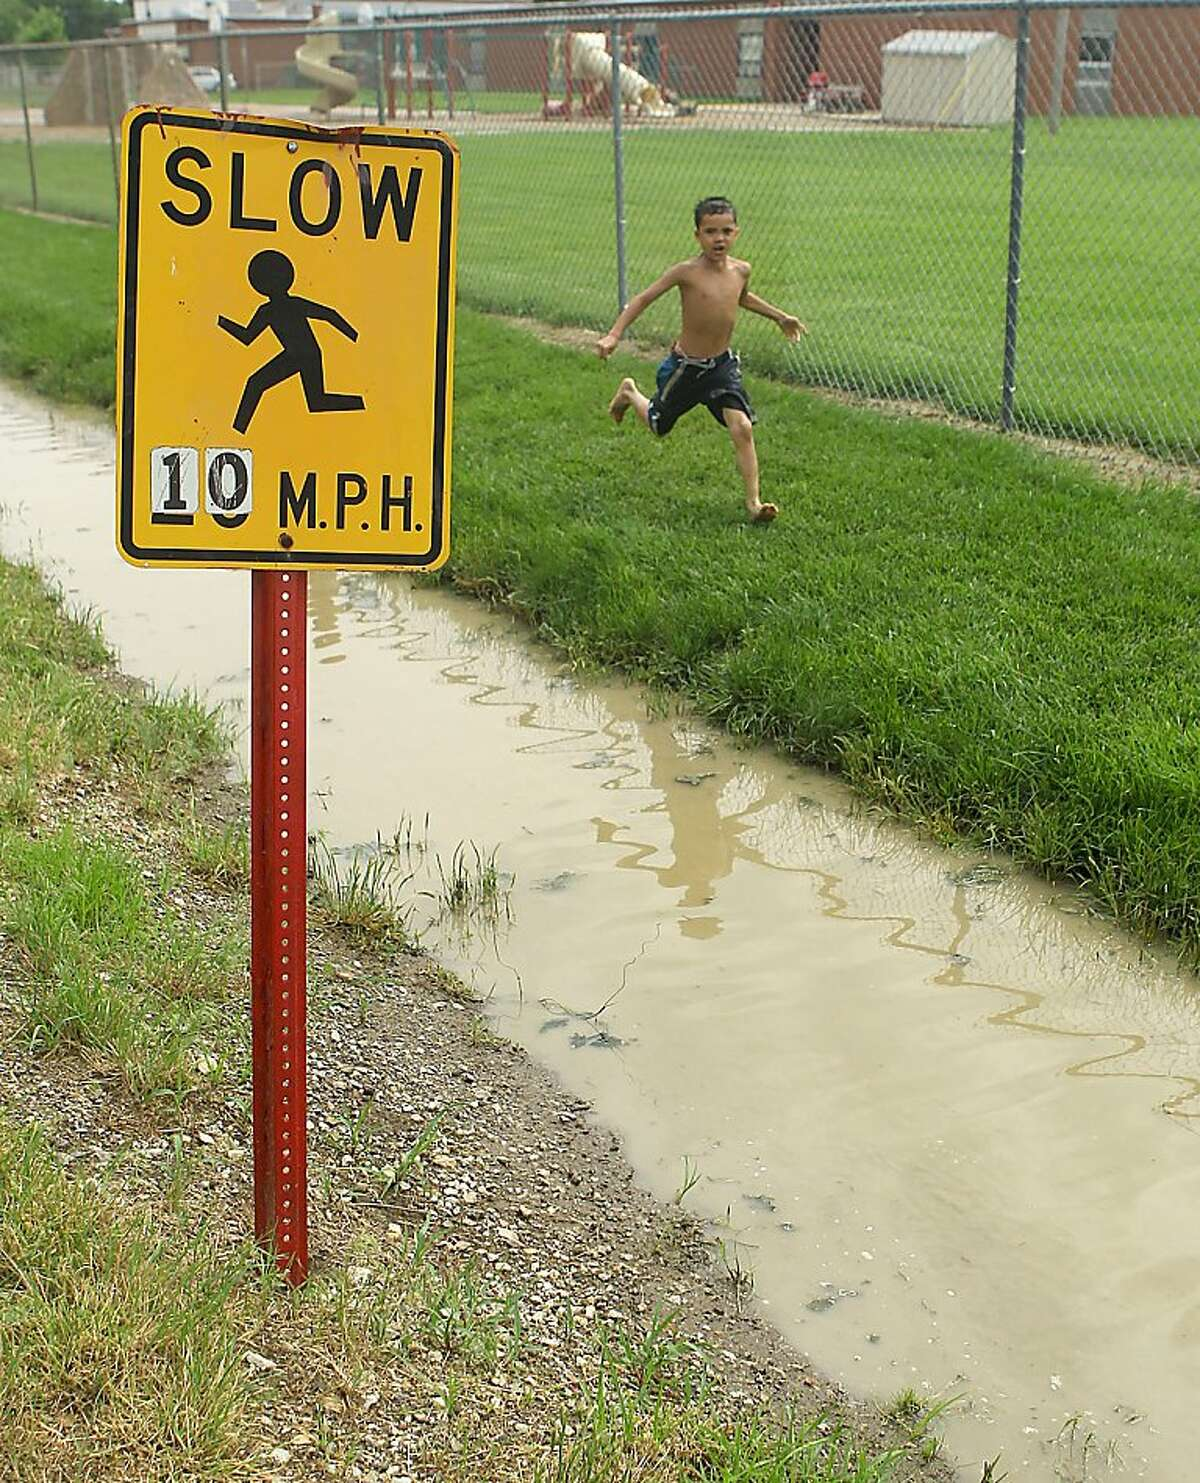 Jace Milbourne, 7, runs past a water filled ditched Thursday, June 2, 2011, near the Riverside Unified Elementary School District in Elwood, Kan. The small Kansas town on the bank of the Missouri River is threatened by the rising waters.